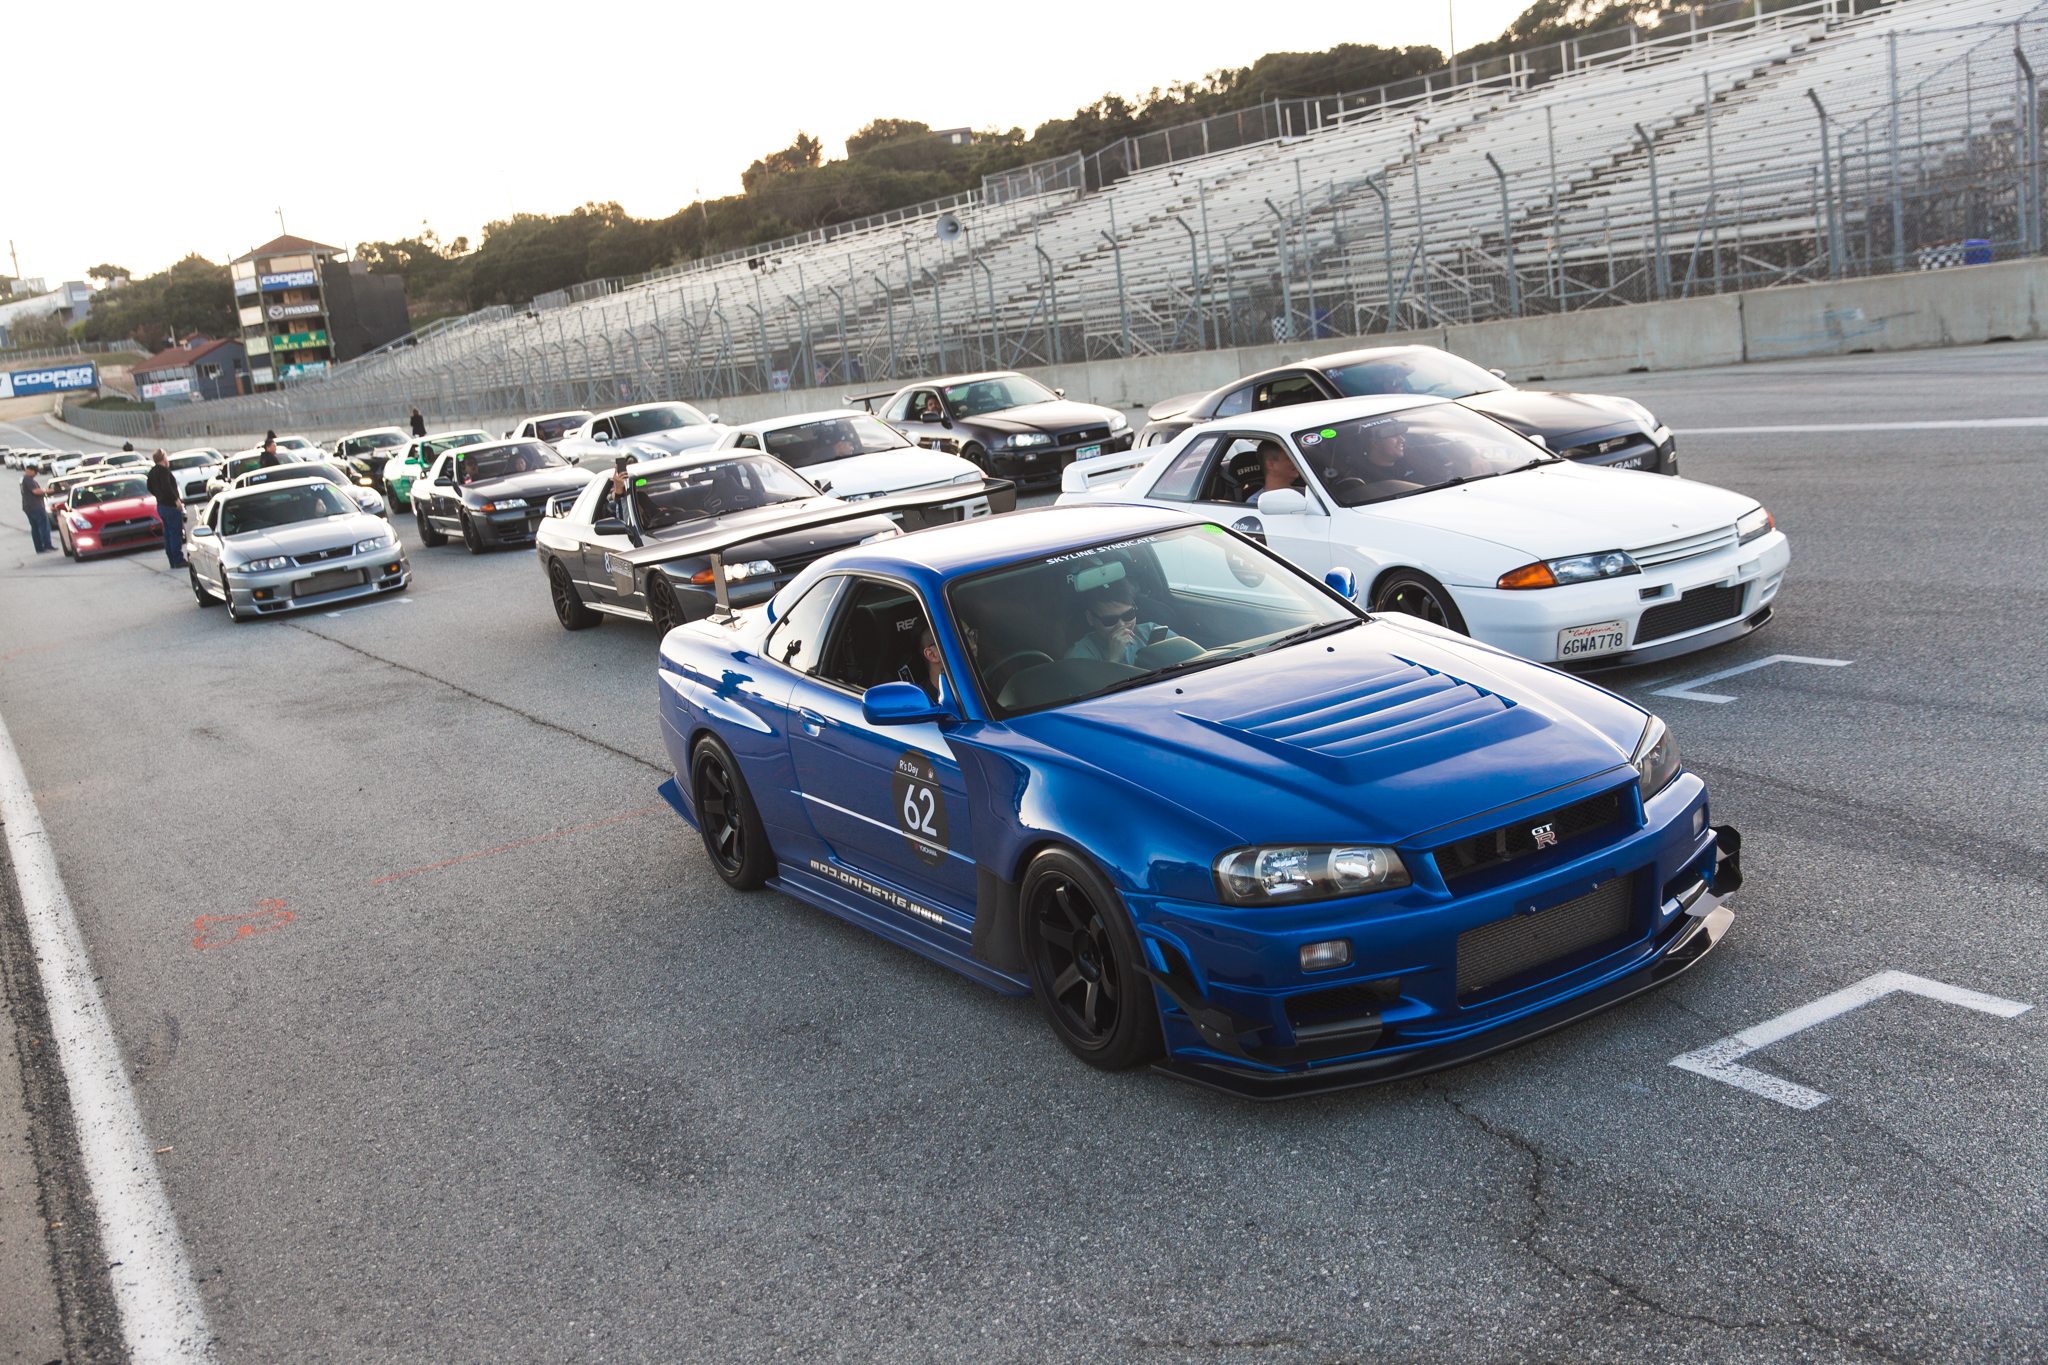 Stay_Driven_Rs_Day-129.jpg